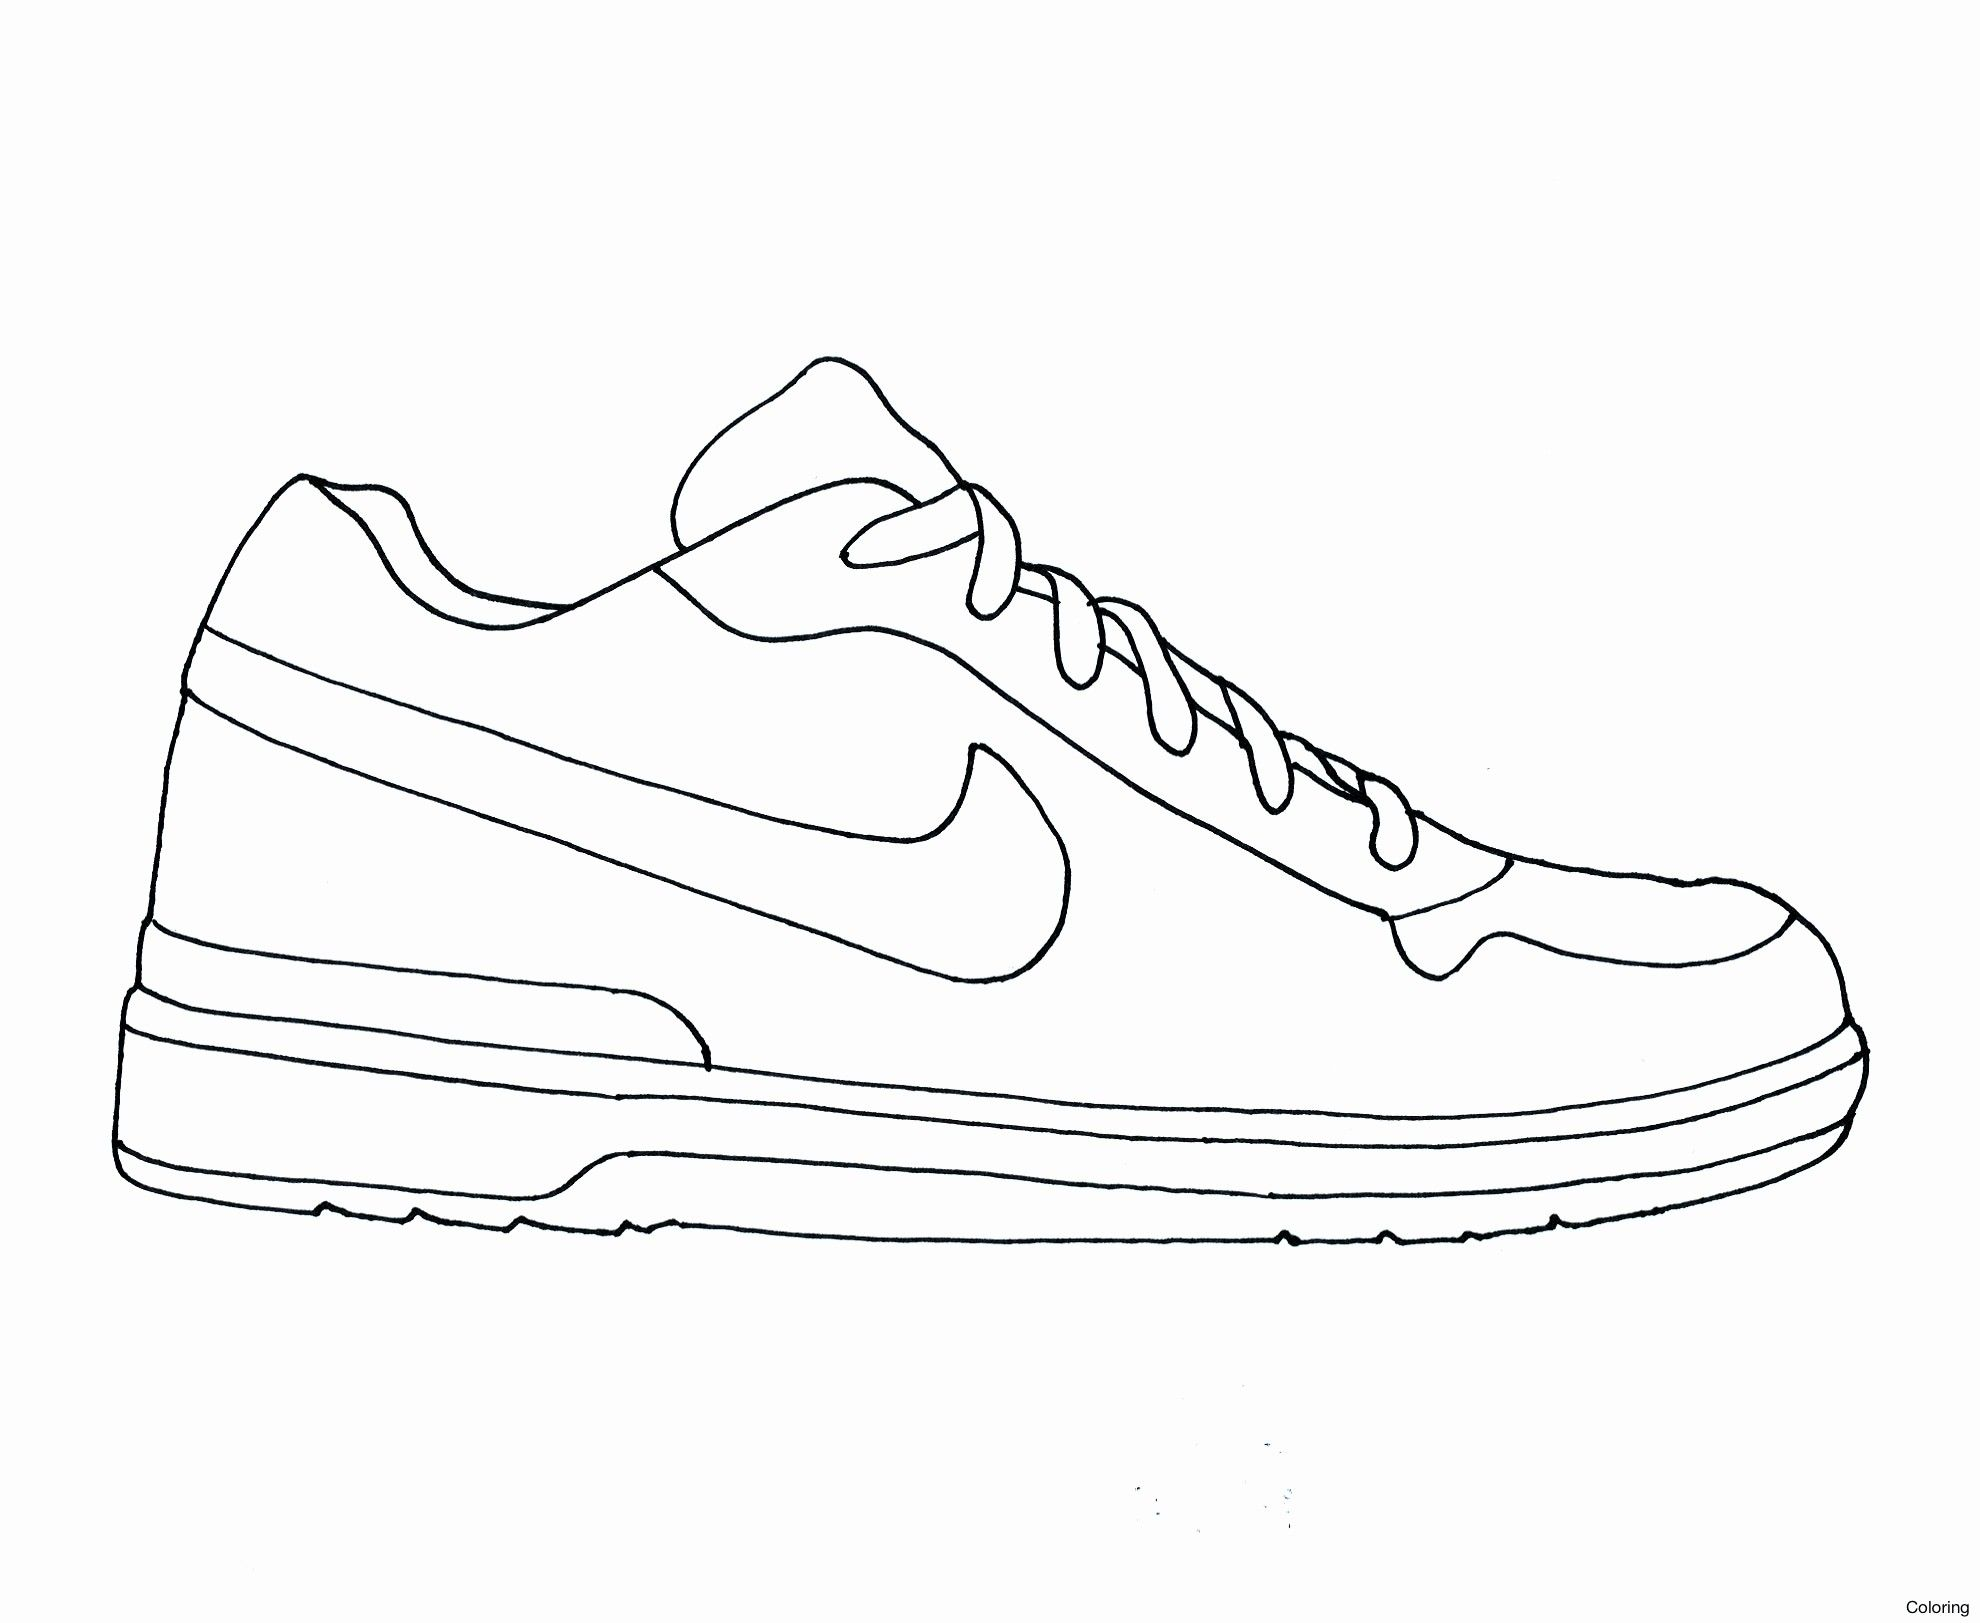 Grab Your Fresh Coloring Pages Jordan Shoes Free Https Gethighit Com Fresh Coloring Pages Jordan Shoes Free Shoes Clipart Pictures Of Shoes Shoes Drawing